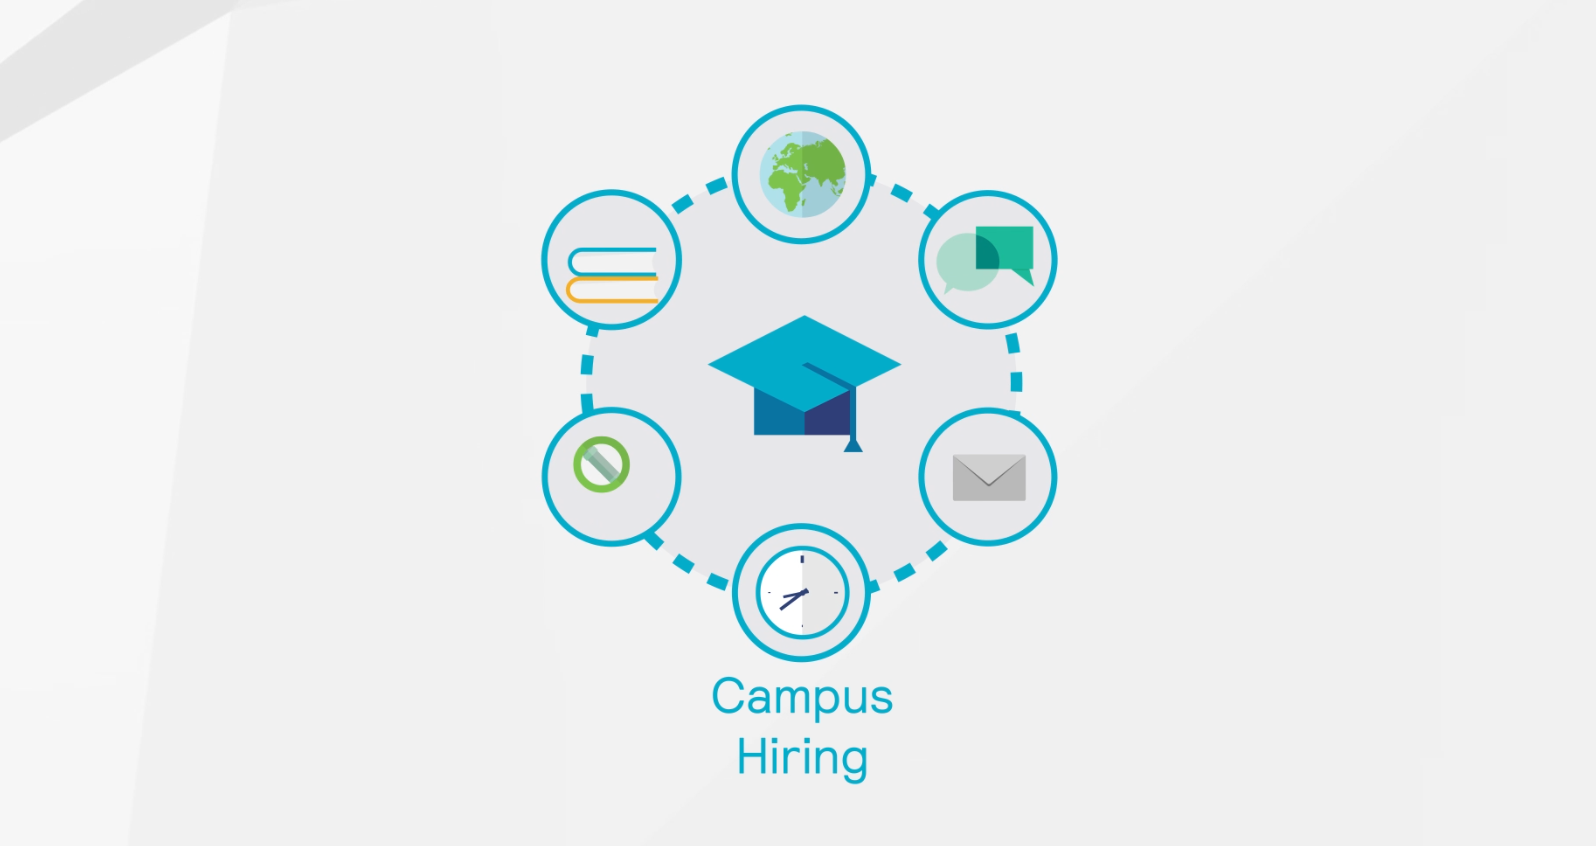 Hire the Right Candidates from the Right Campus